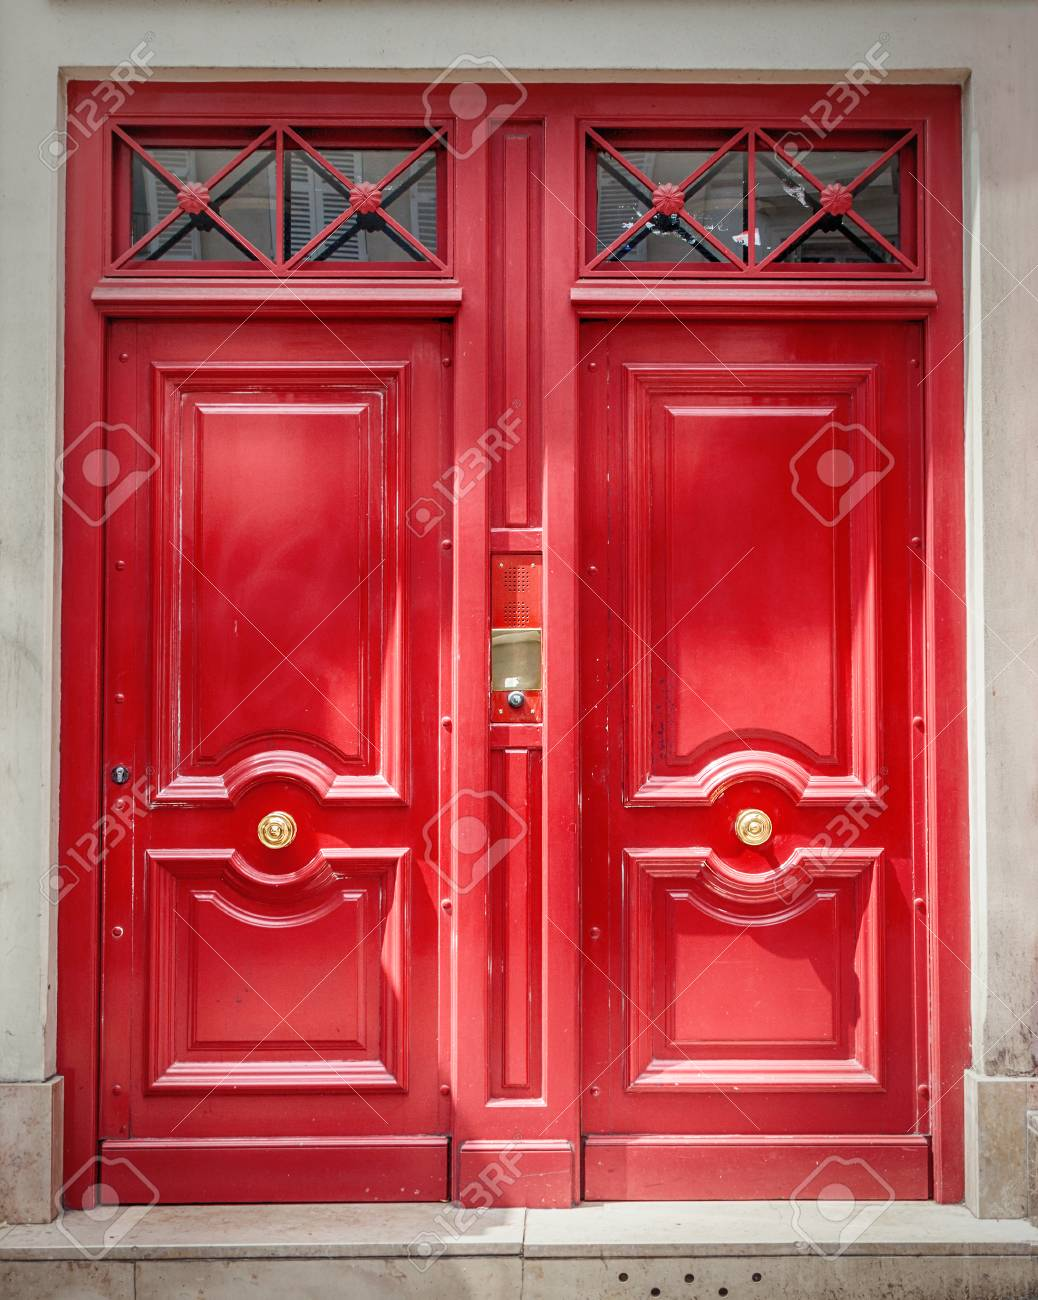 A traditional French wooden entrance door - 122364377